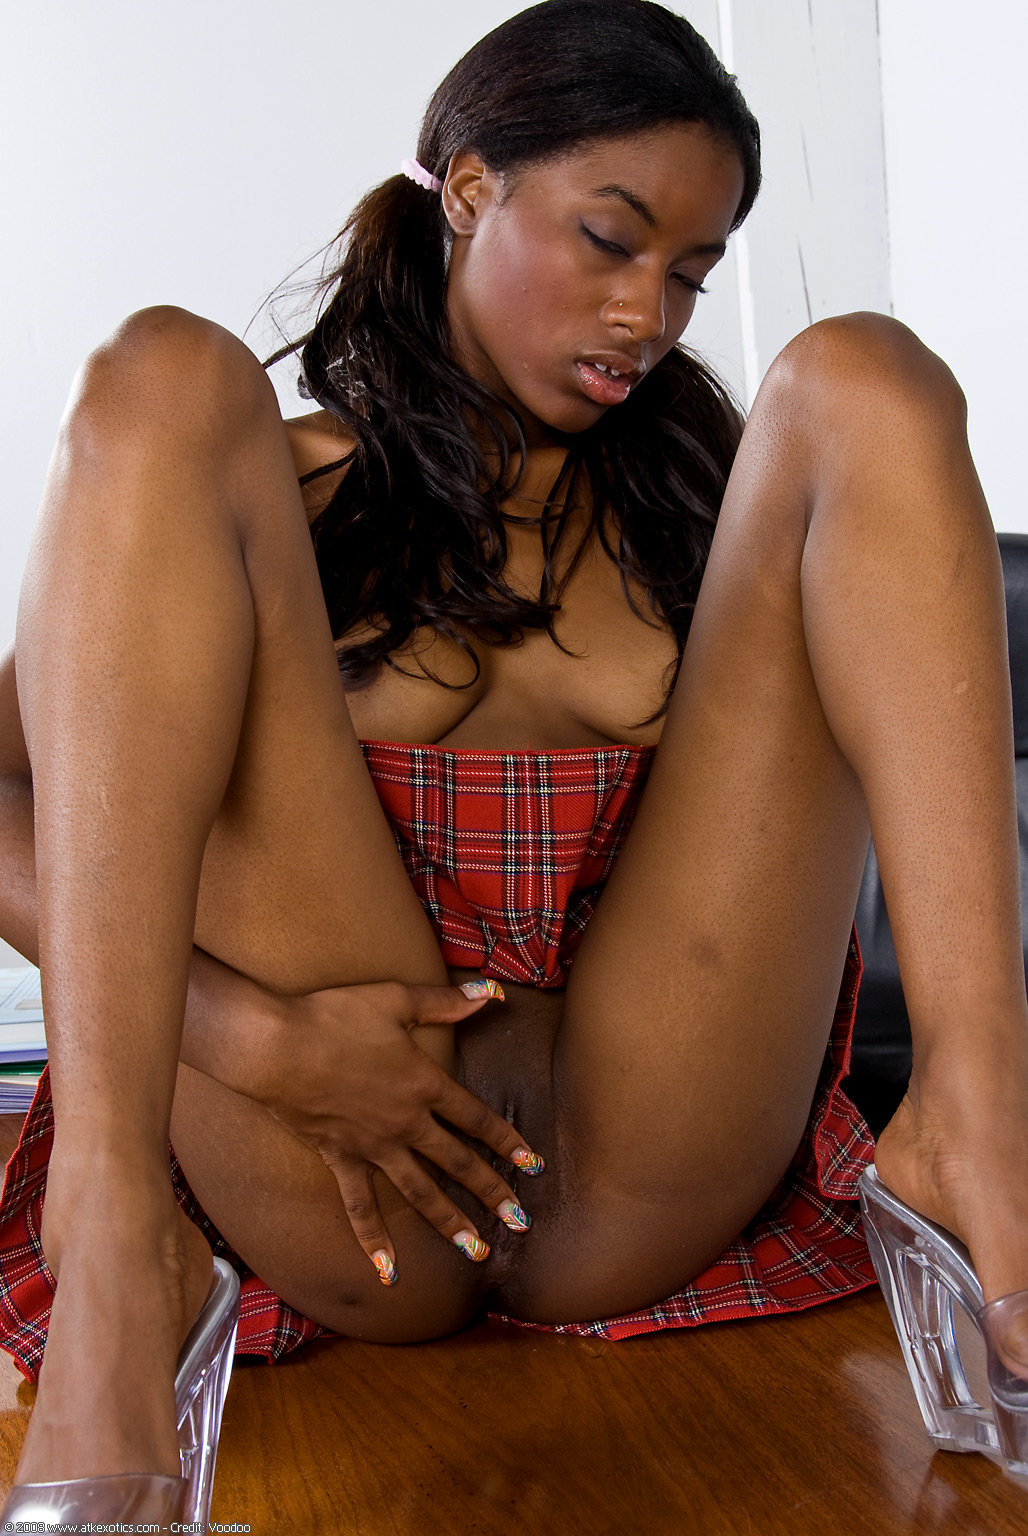 Not absolutely dirty black girl porn share your